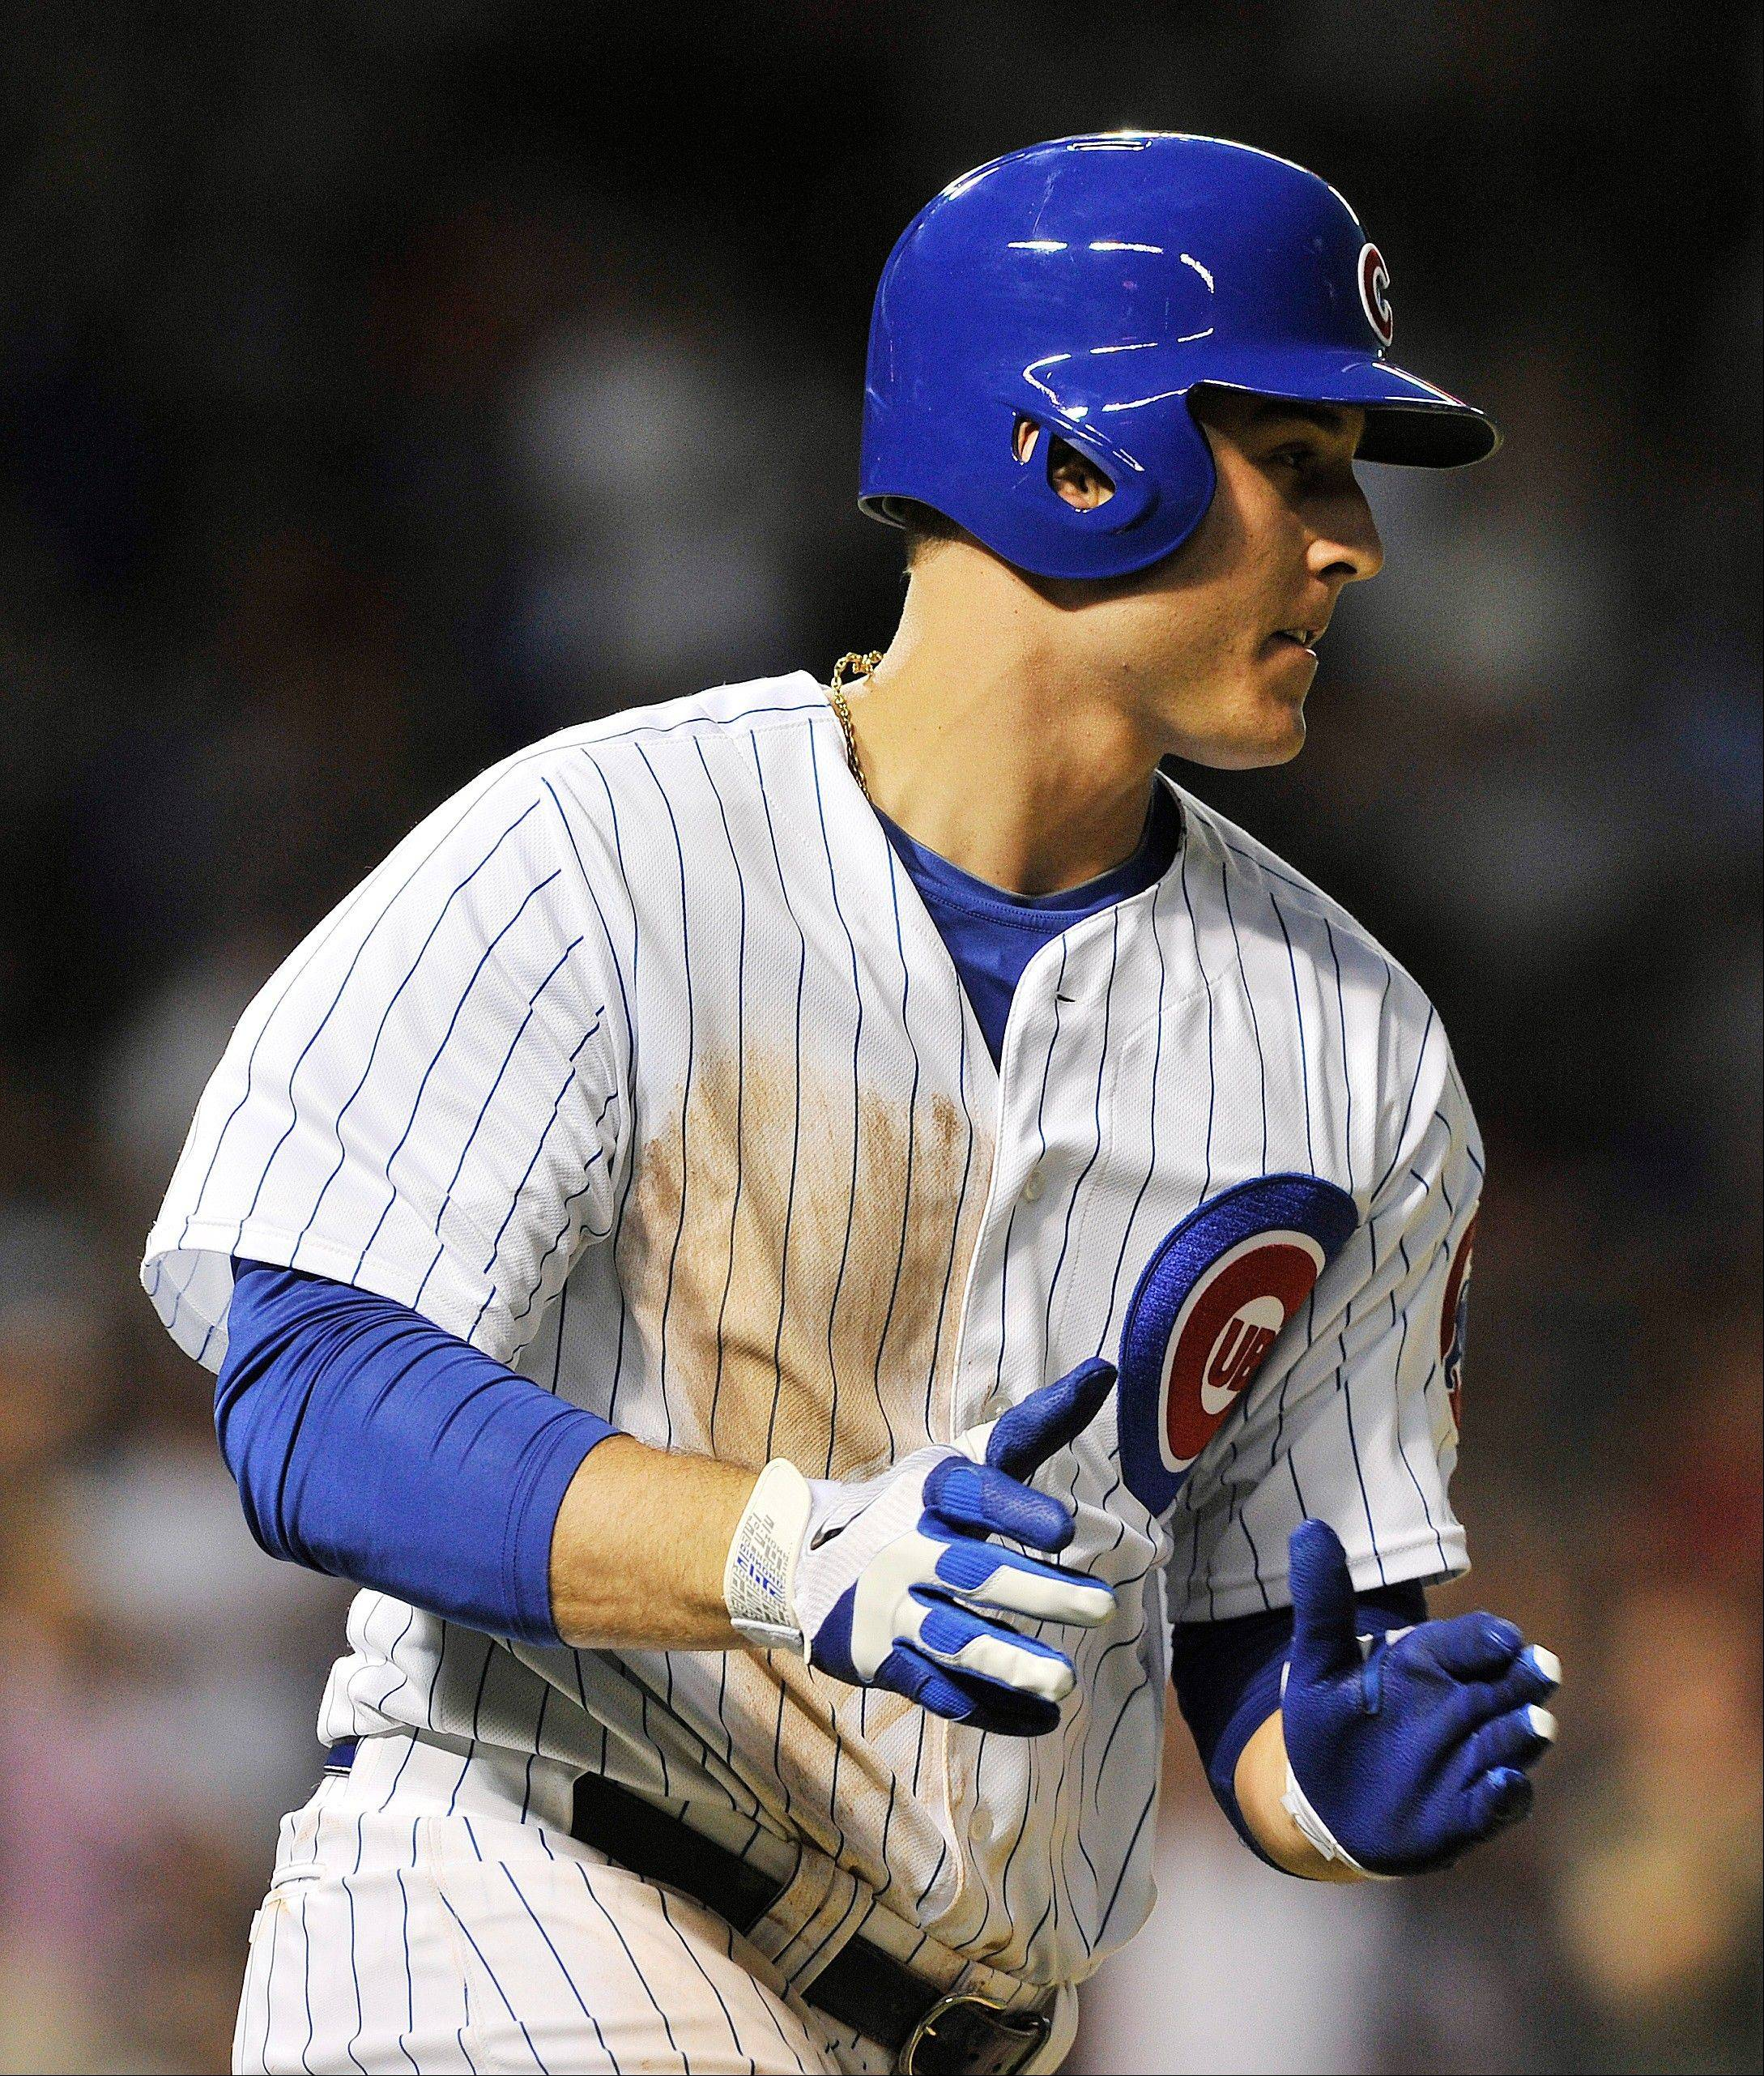 Anthony Rizzo was 2-for-4 in his Cubs debut Tuesday night, driving in the go-ahead run with a double in the fourth inning.